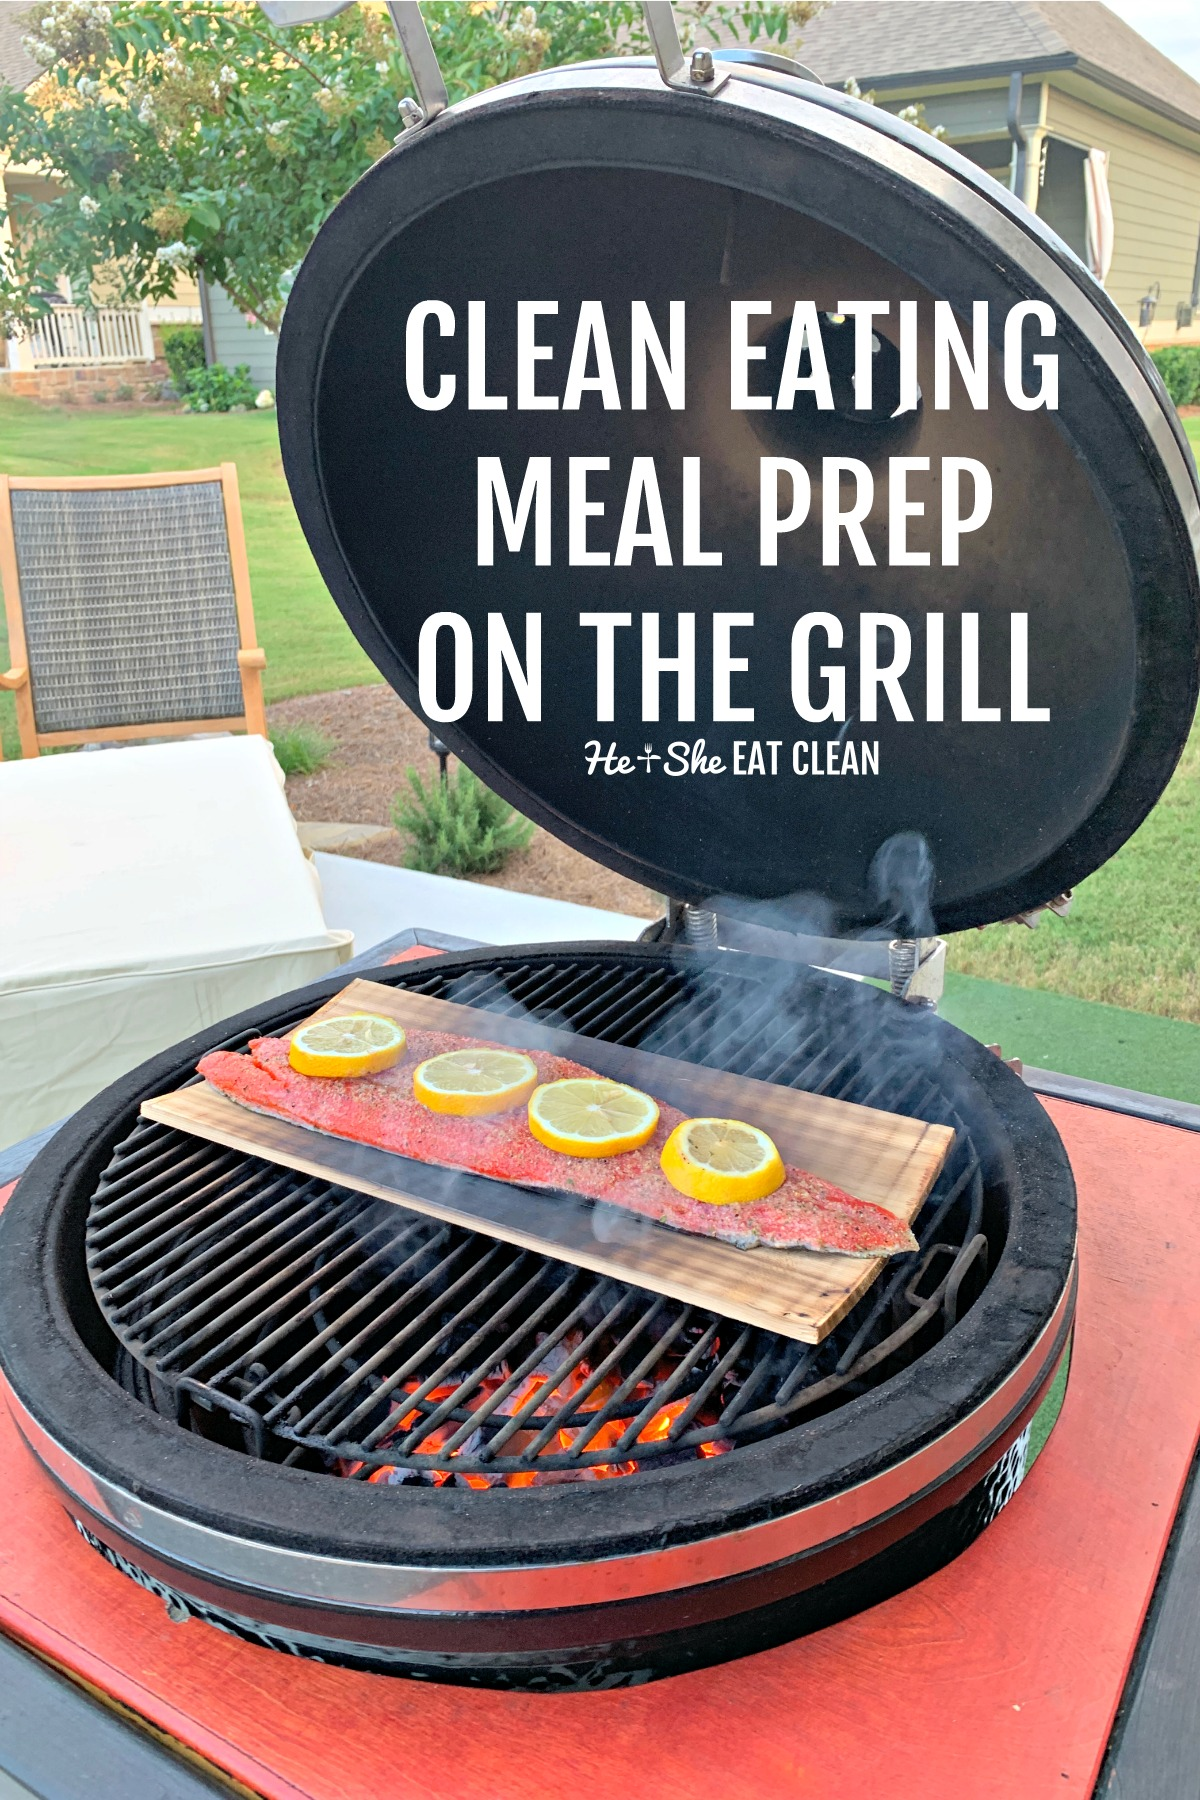 Kamado Joe grill with salmon being grilled - text reads Clean Eating Meal Prep on the Grill